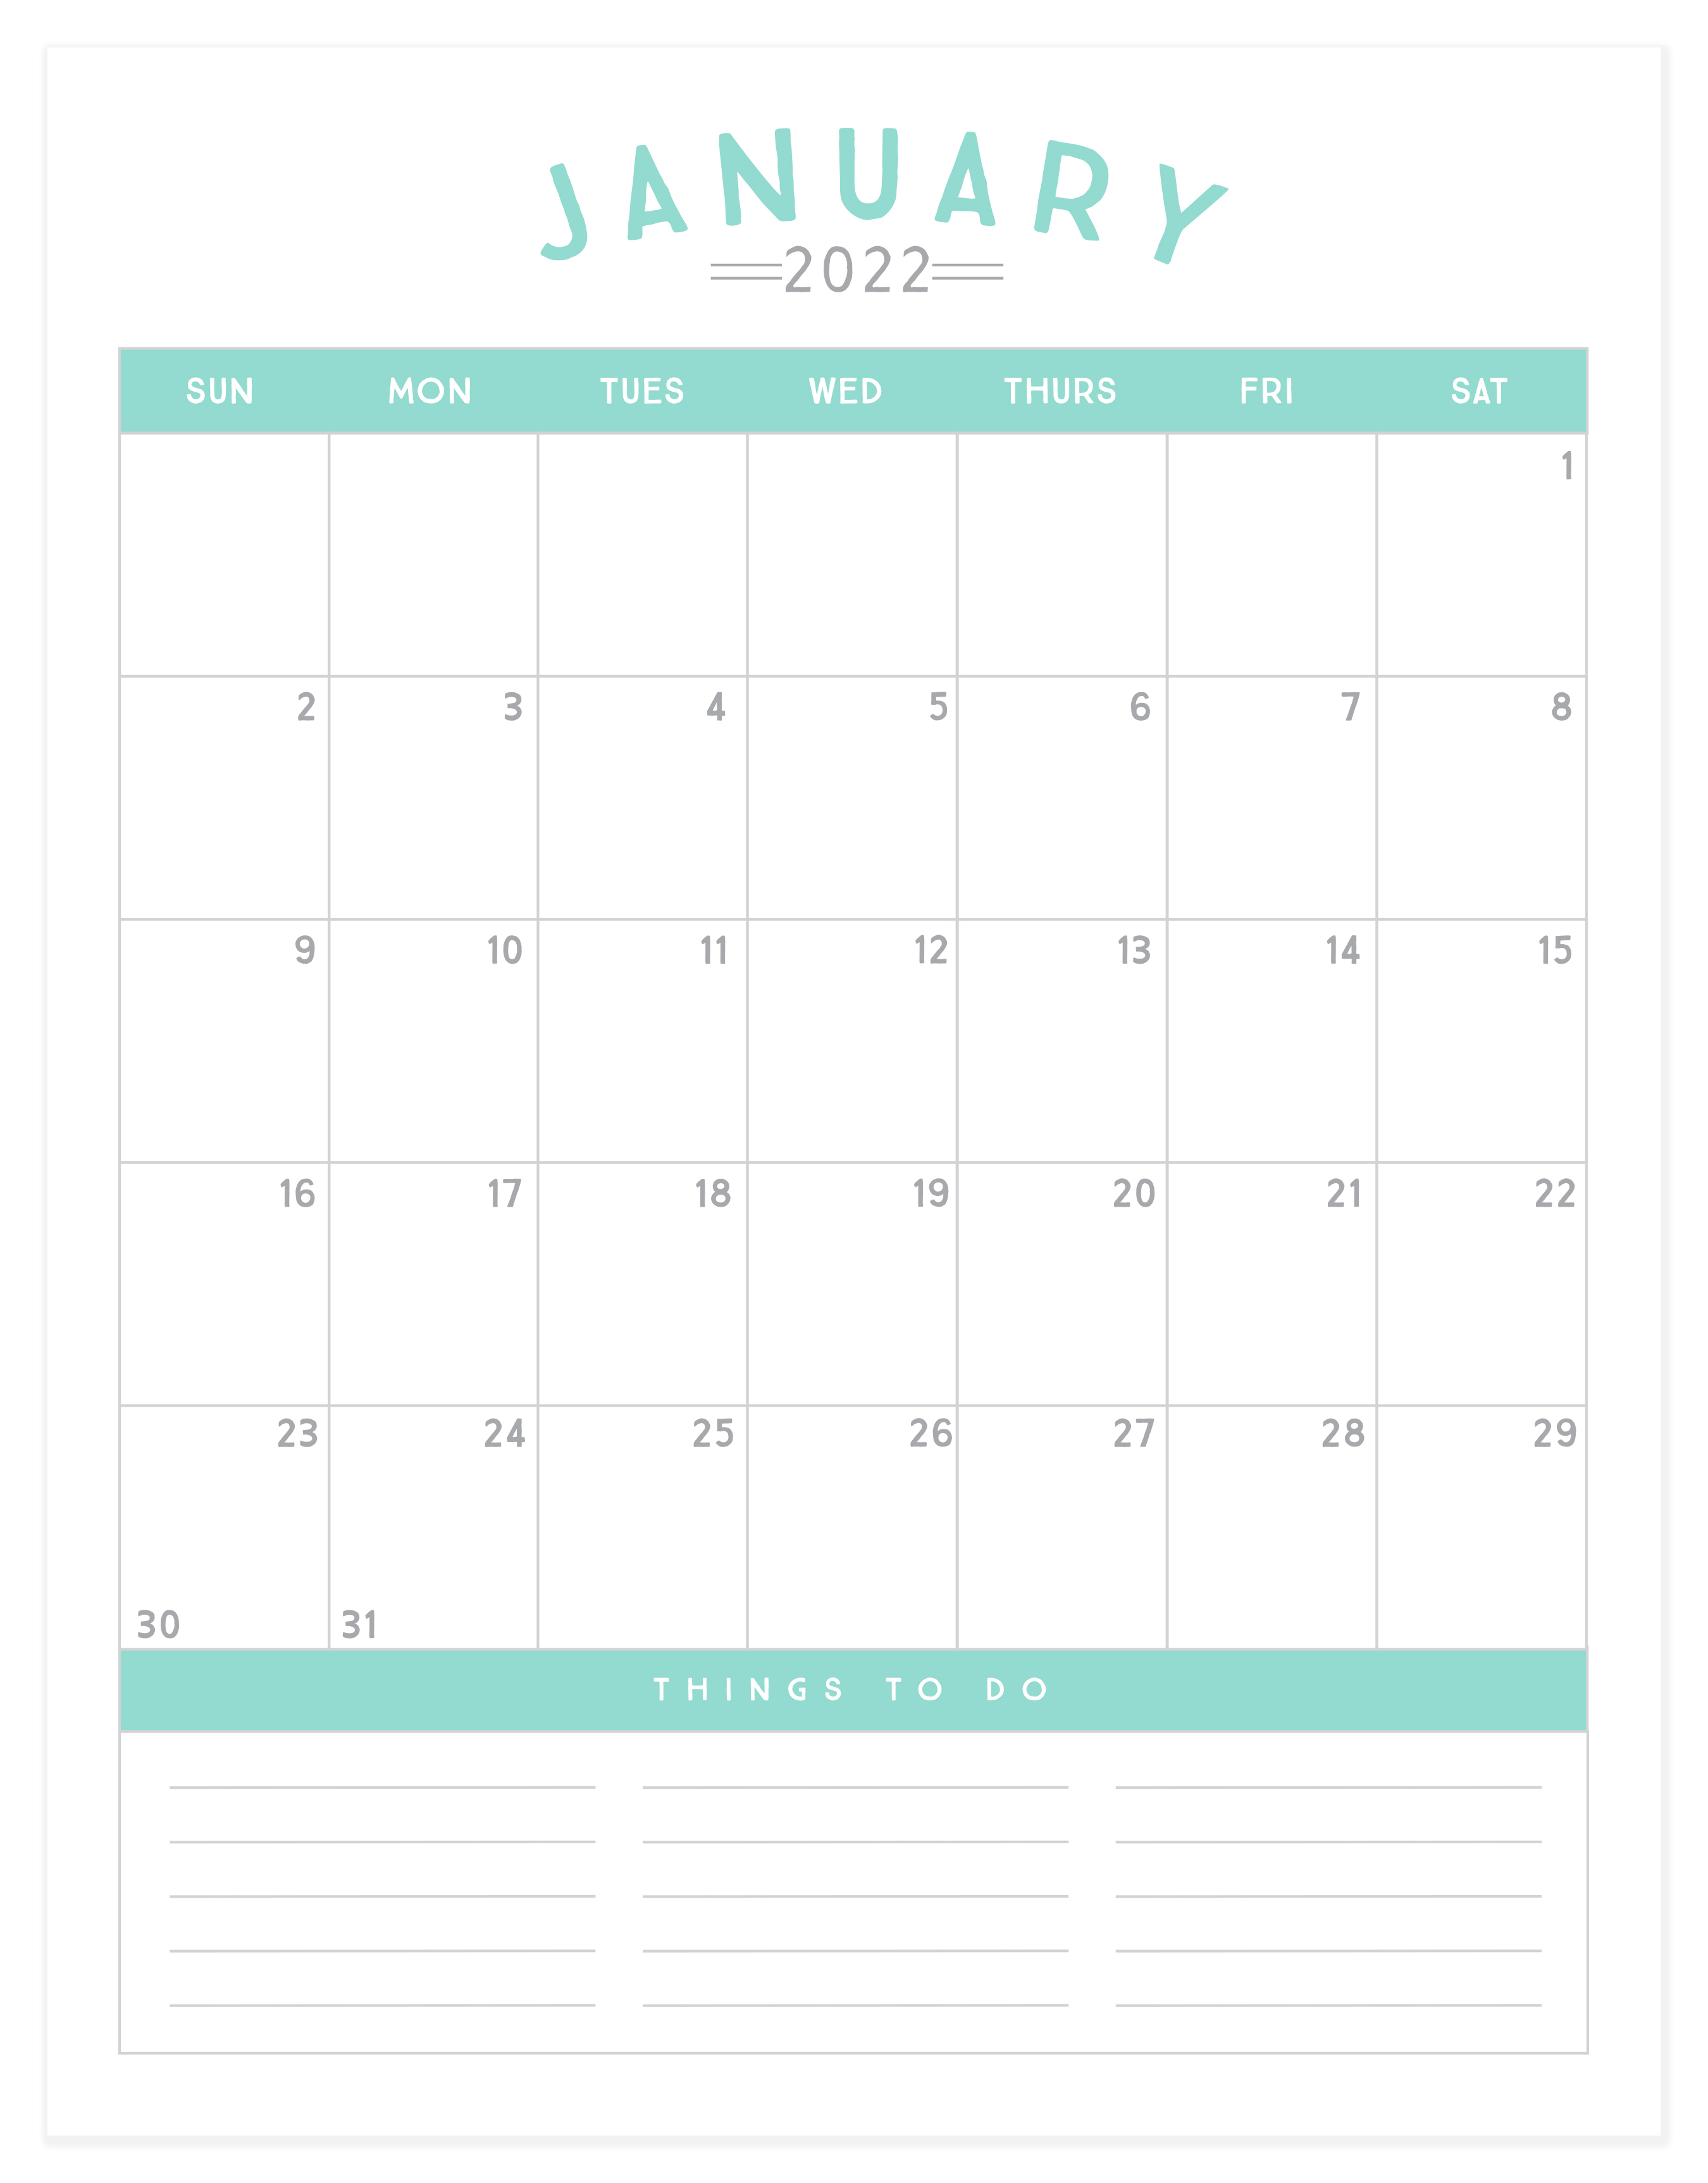 Kick off 2022 with a fresh start and a cute new calendar! This set of 12-month calendars are simple, stream-lined and the perfect planning toolto help you get organized inthe new year. Click the link below to download our free printable 2022 calendar!